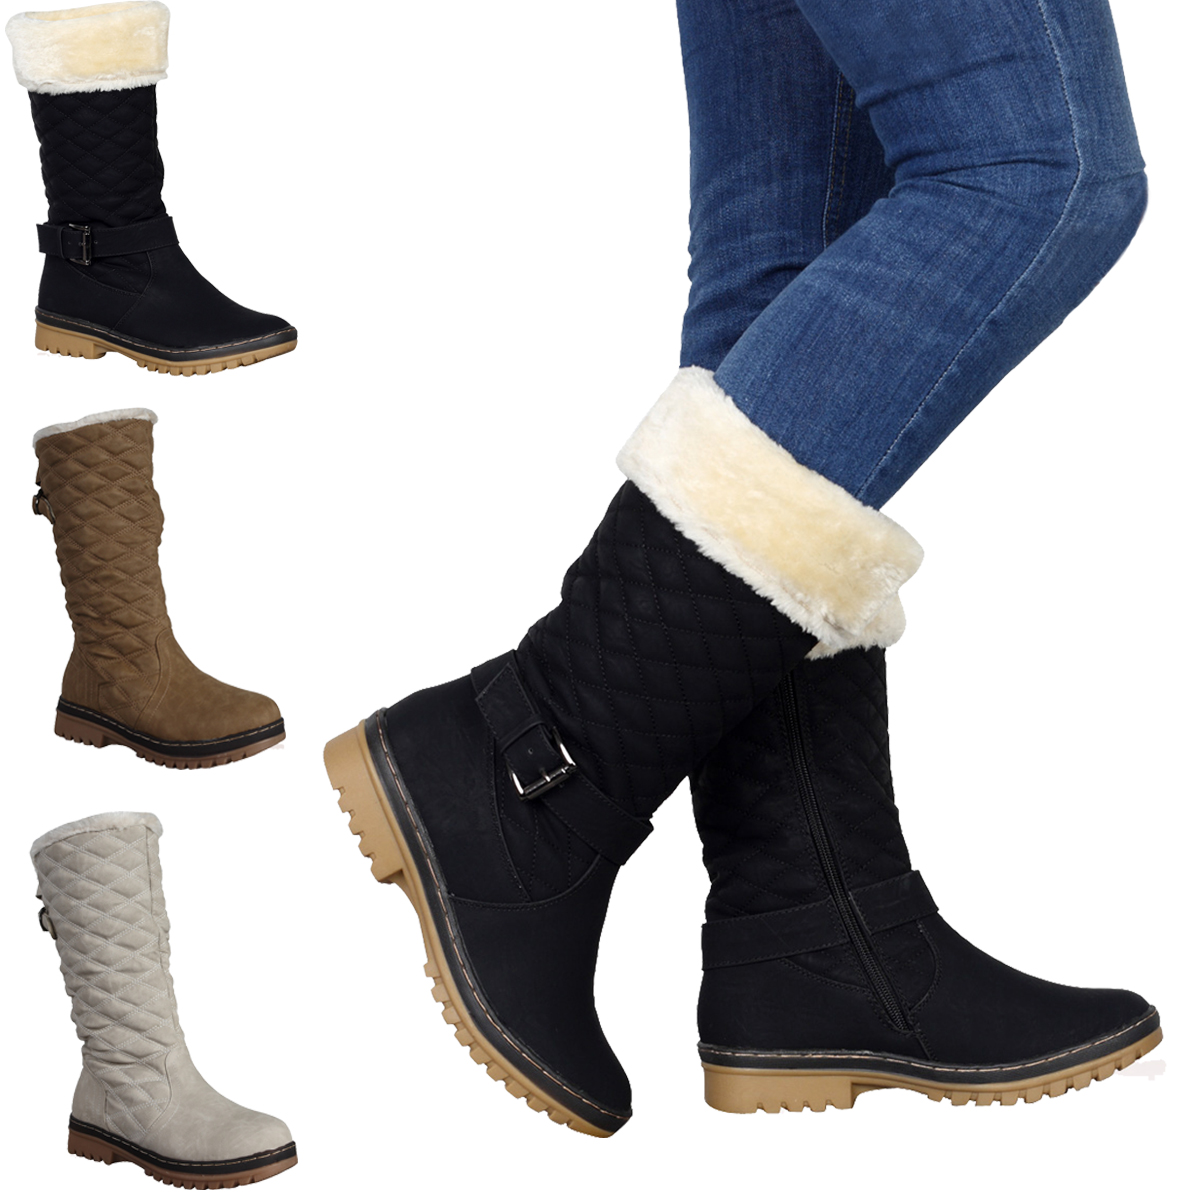 Next Womens Black Snow Boots | Santa Barbara Institute for ...